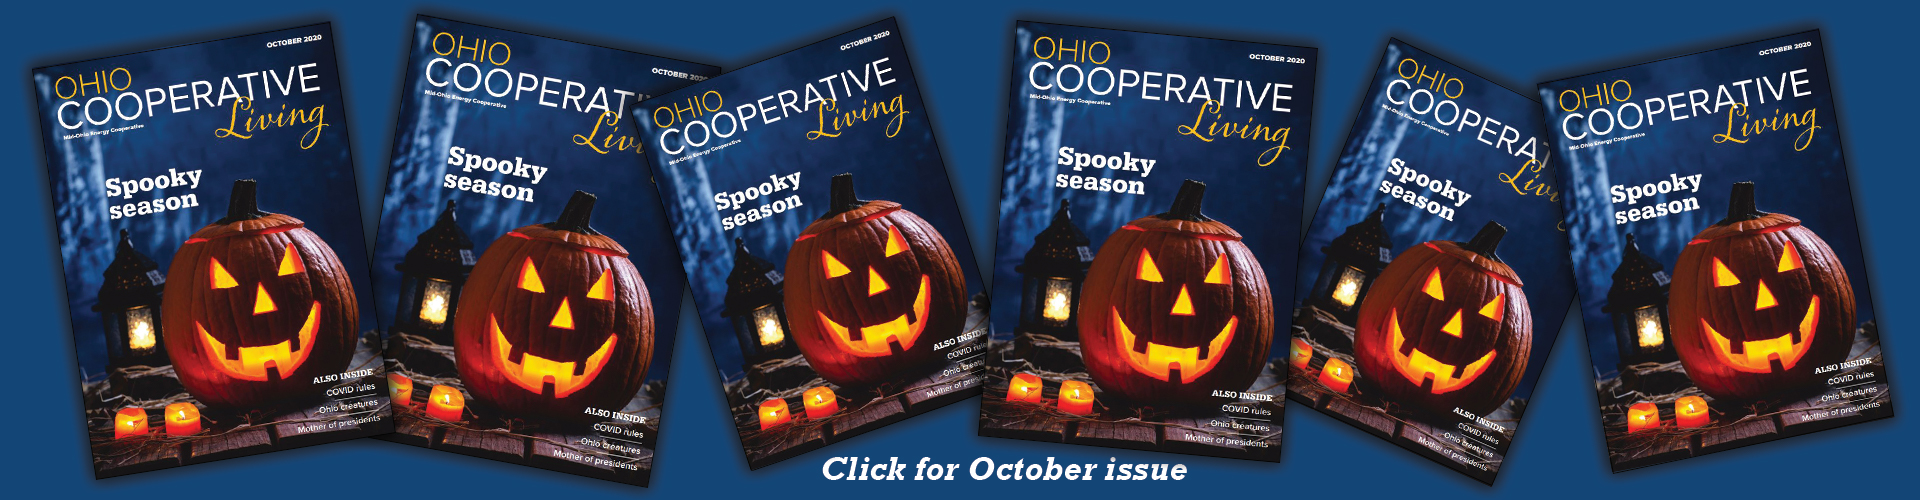 Click for October's Ohio Cooperative Living magazine